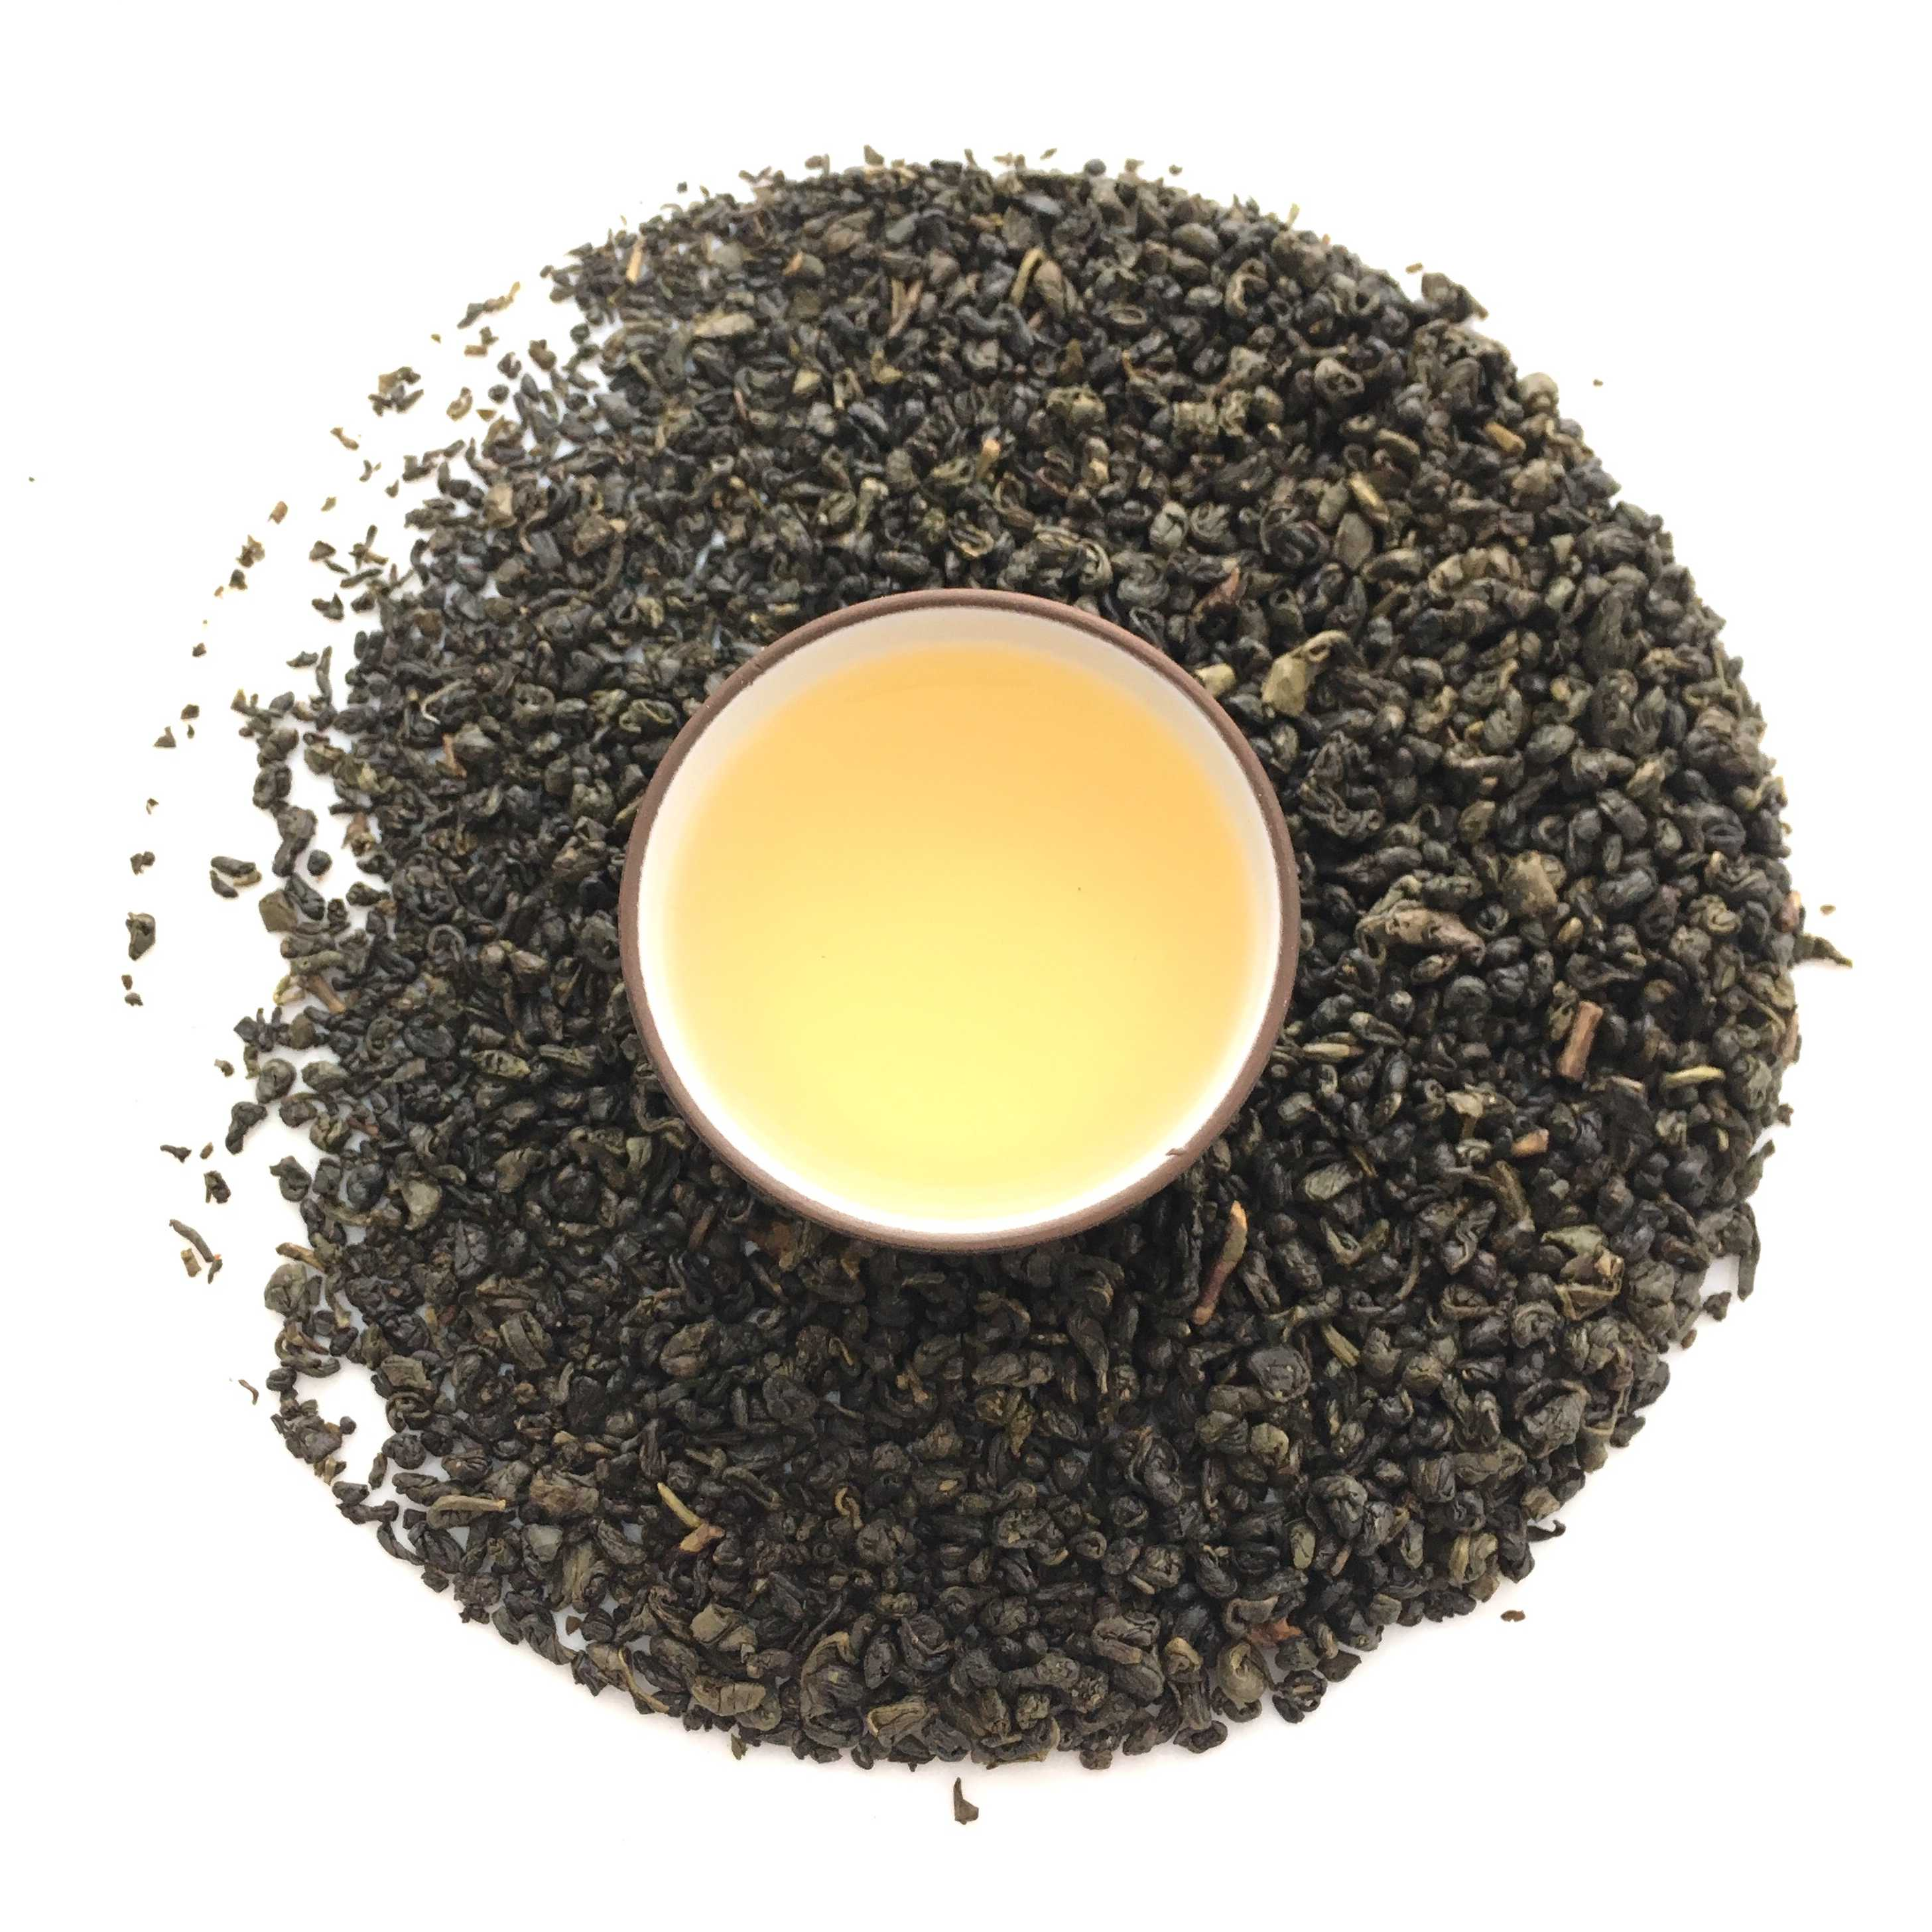 gunpowder Gunpowder or black powder is of great historical importance in chemistry although it can explode, its principal use is as a propellant gunpowder was invented by chinese alchemists in the 9th century.